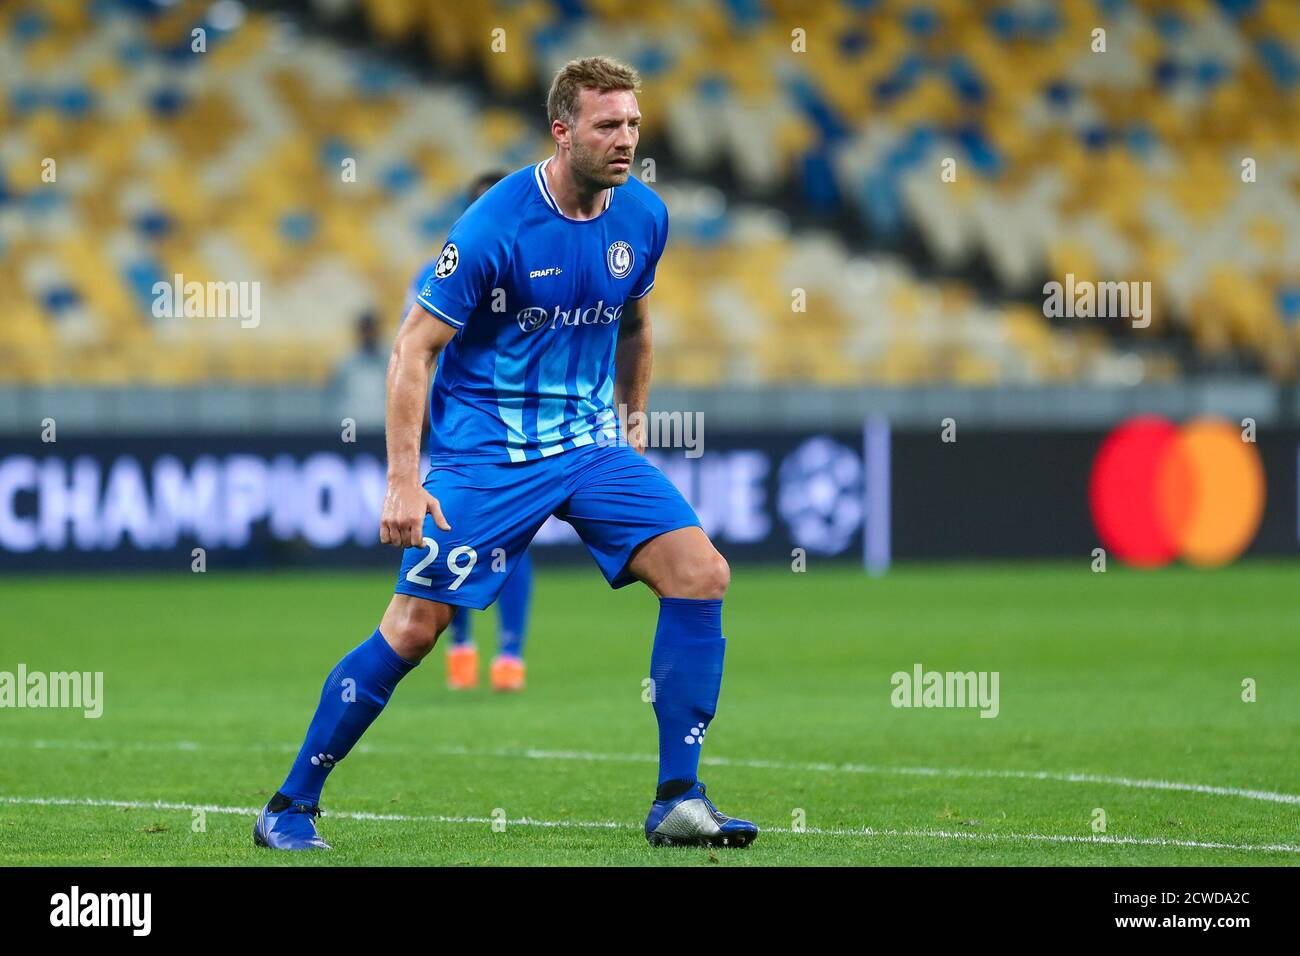 KYIV, UKRAINE - SEPTEMBER 29: Laurent Depoitre of AA Gent during the UEFA Champions  League, Play-offs, 2nd leg match between Dynamo Kyiv and KAA Gent Stock  Photo - Alamy